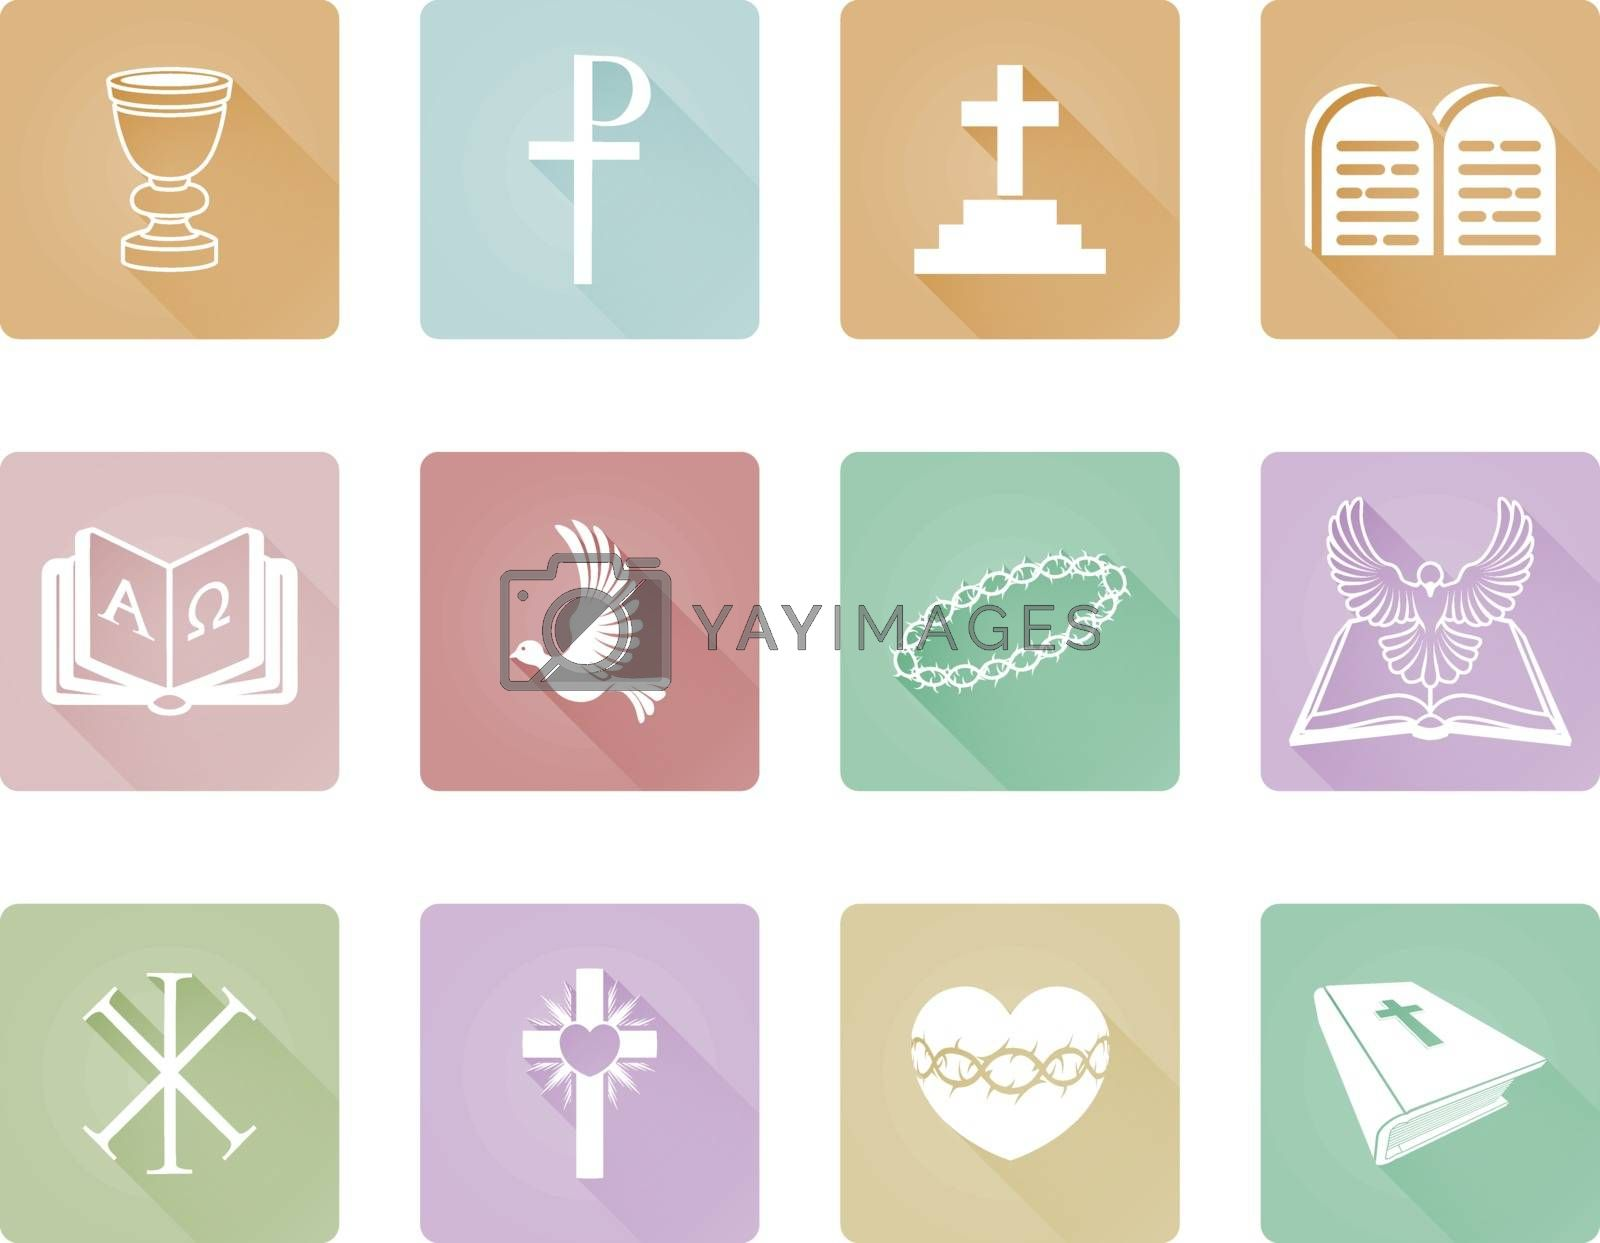 A set of Christian icons and symbols including crown of thorns, dove, alpha omega and cross